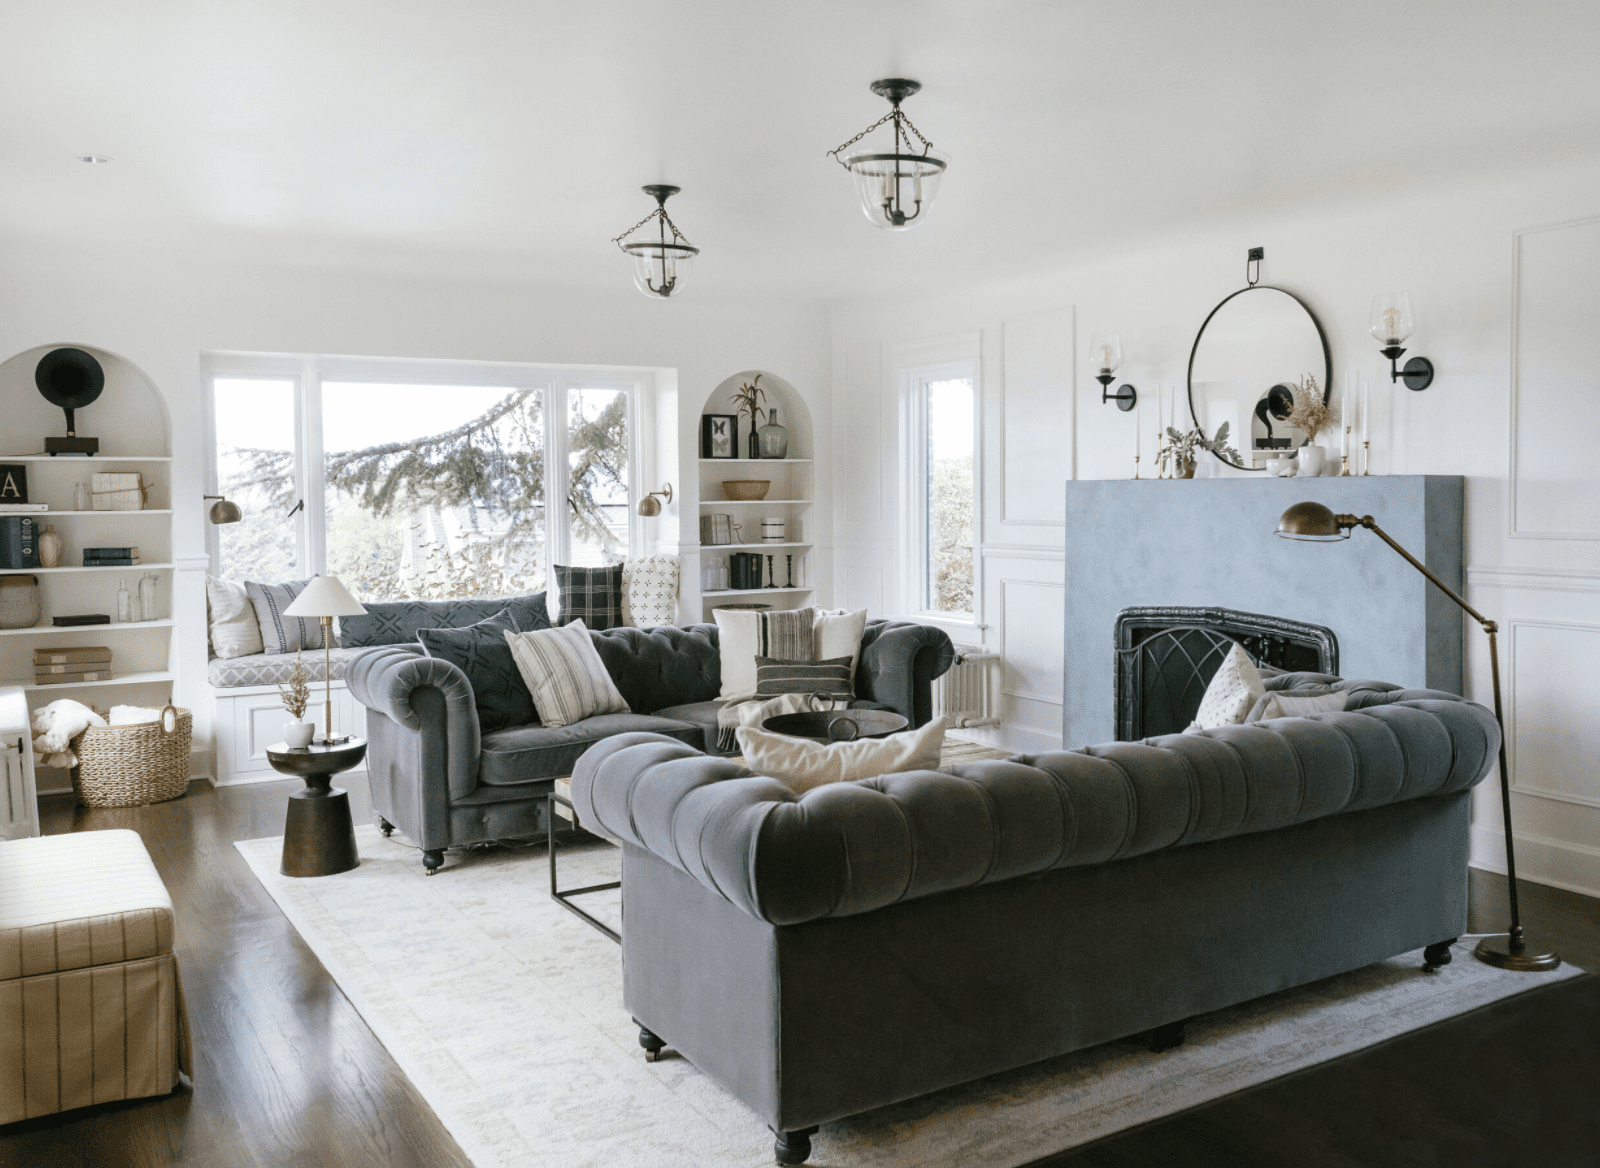 Living room with gray couches